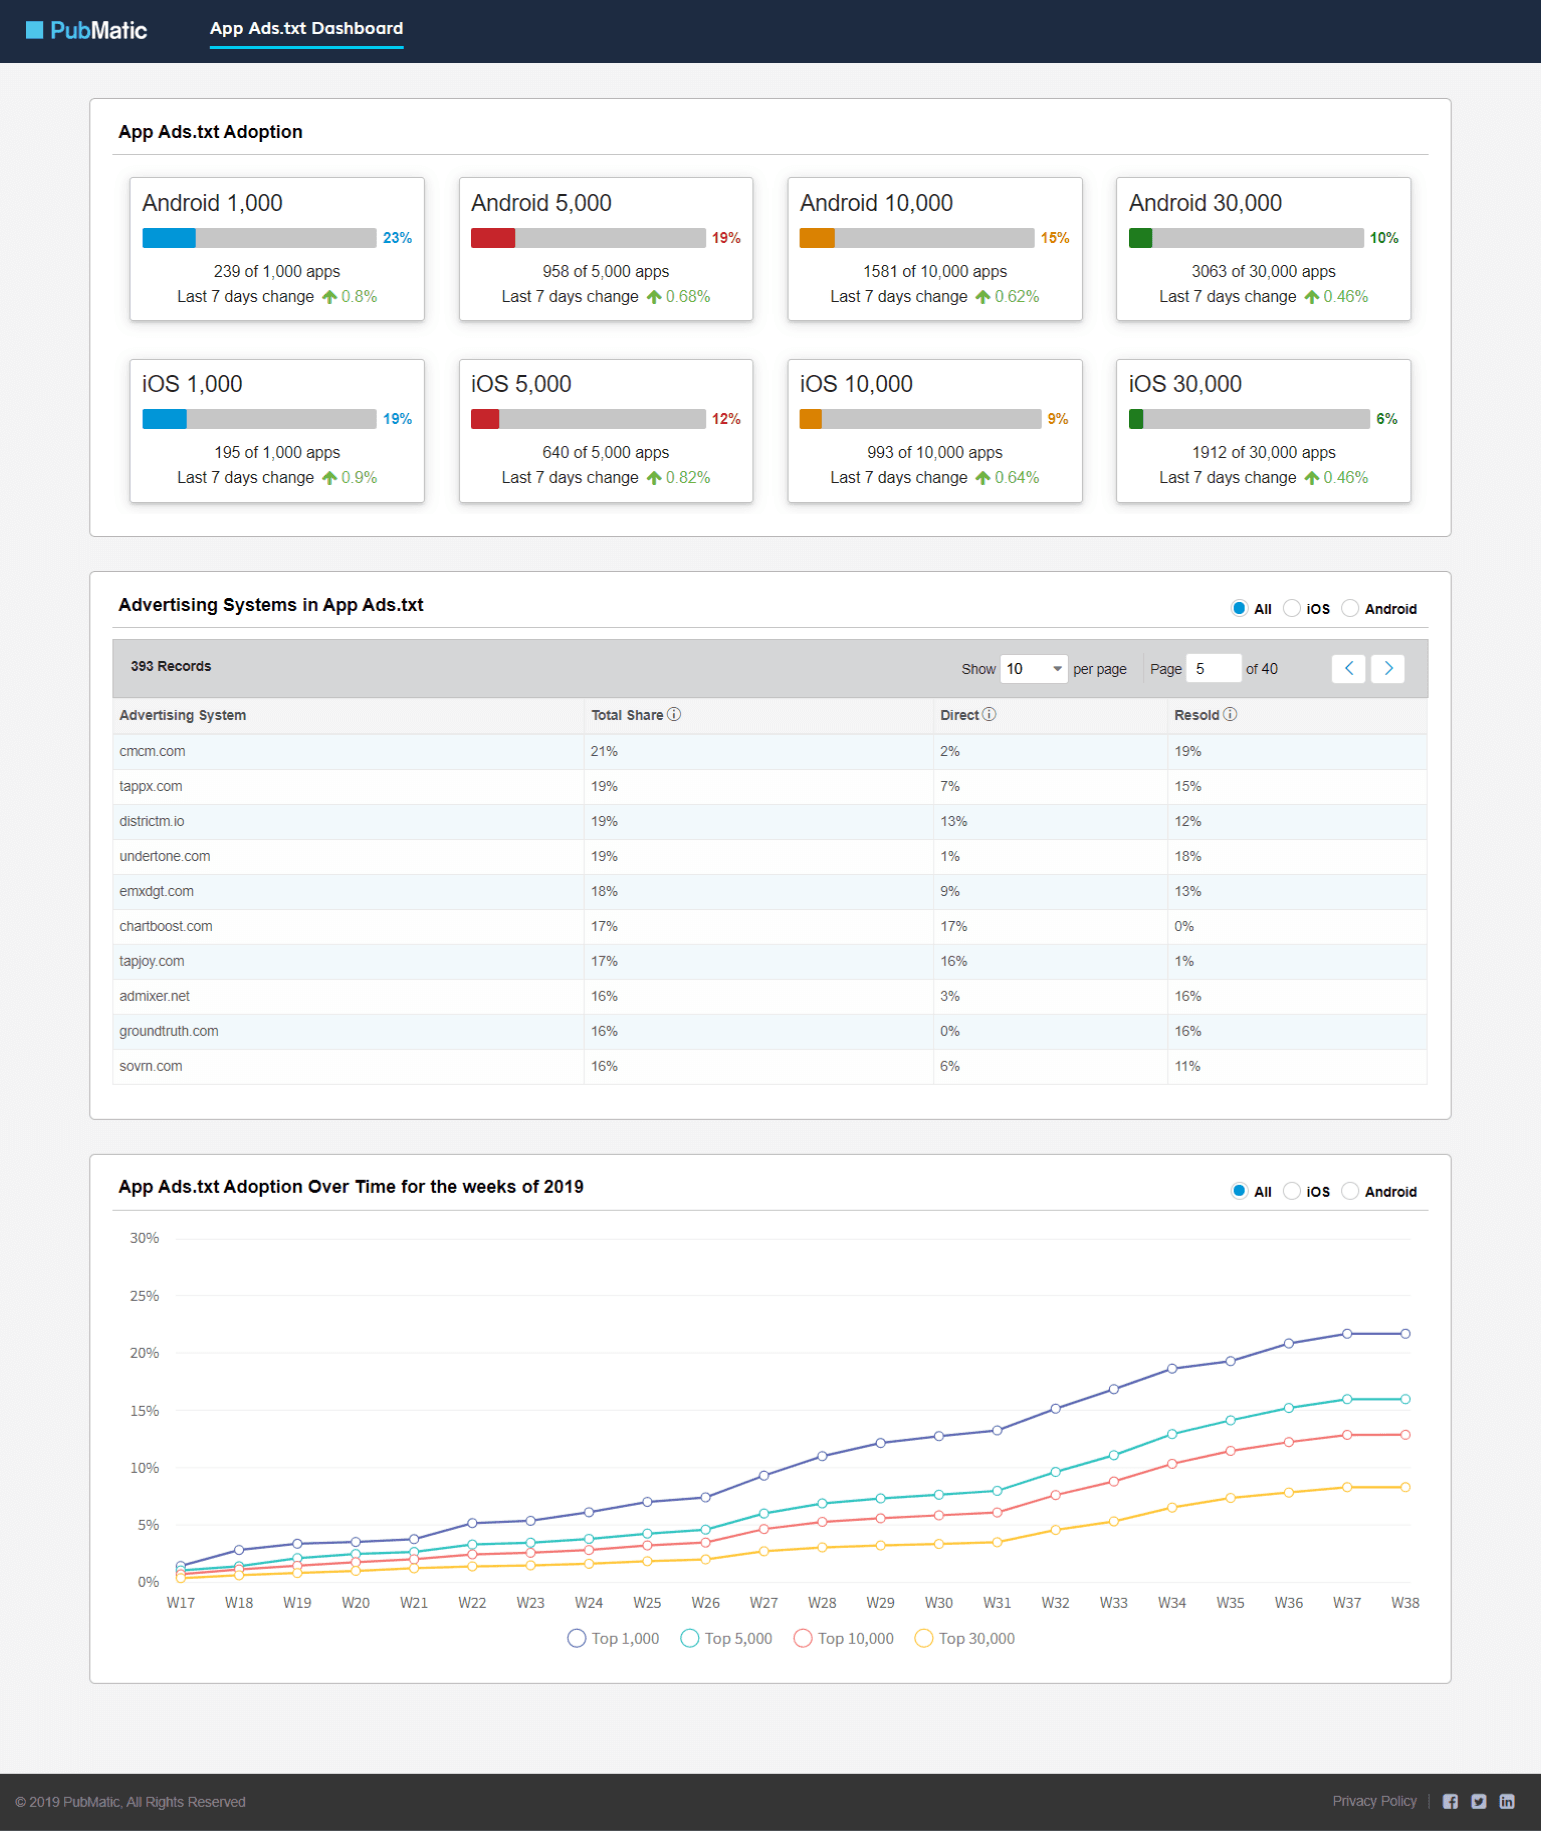 Admixer is included in the app-ads.txt adoption chart by PubMatic